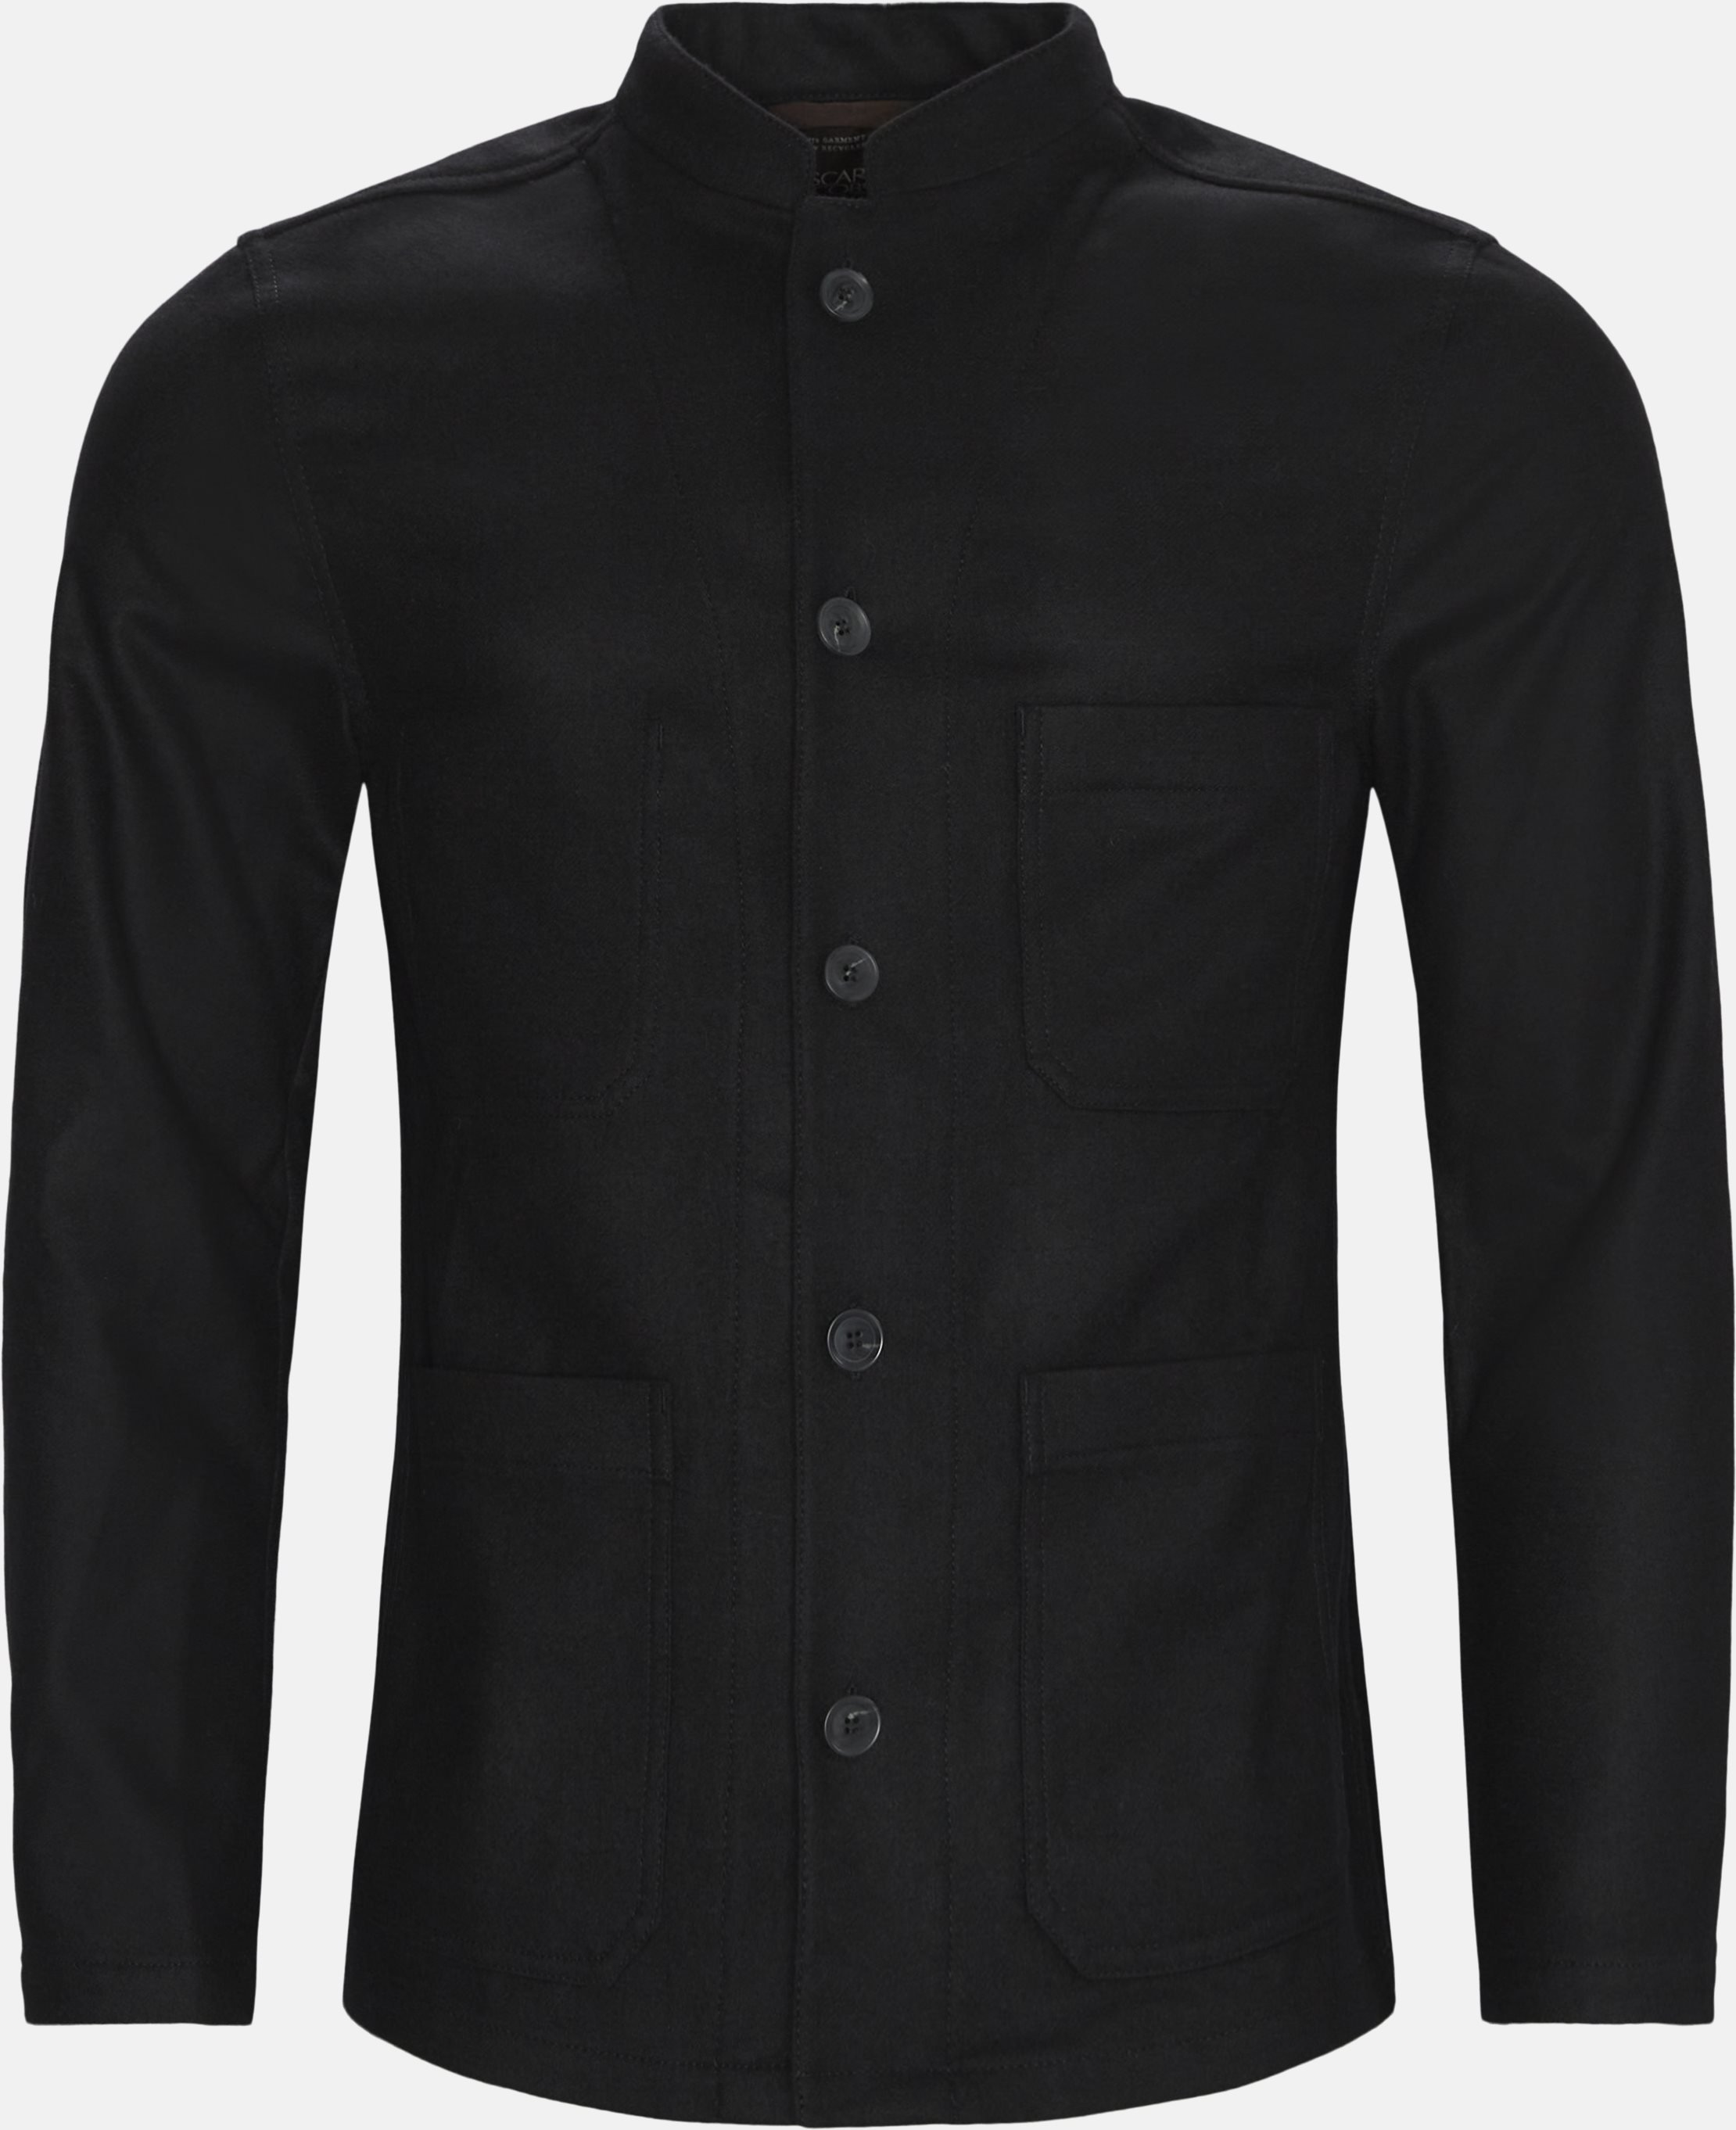 Lightweight jackets - Regular fit - Black